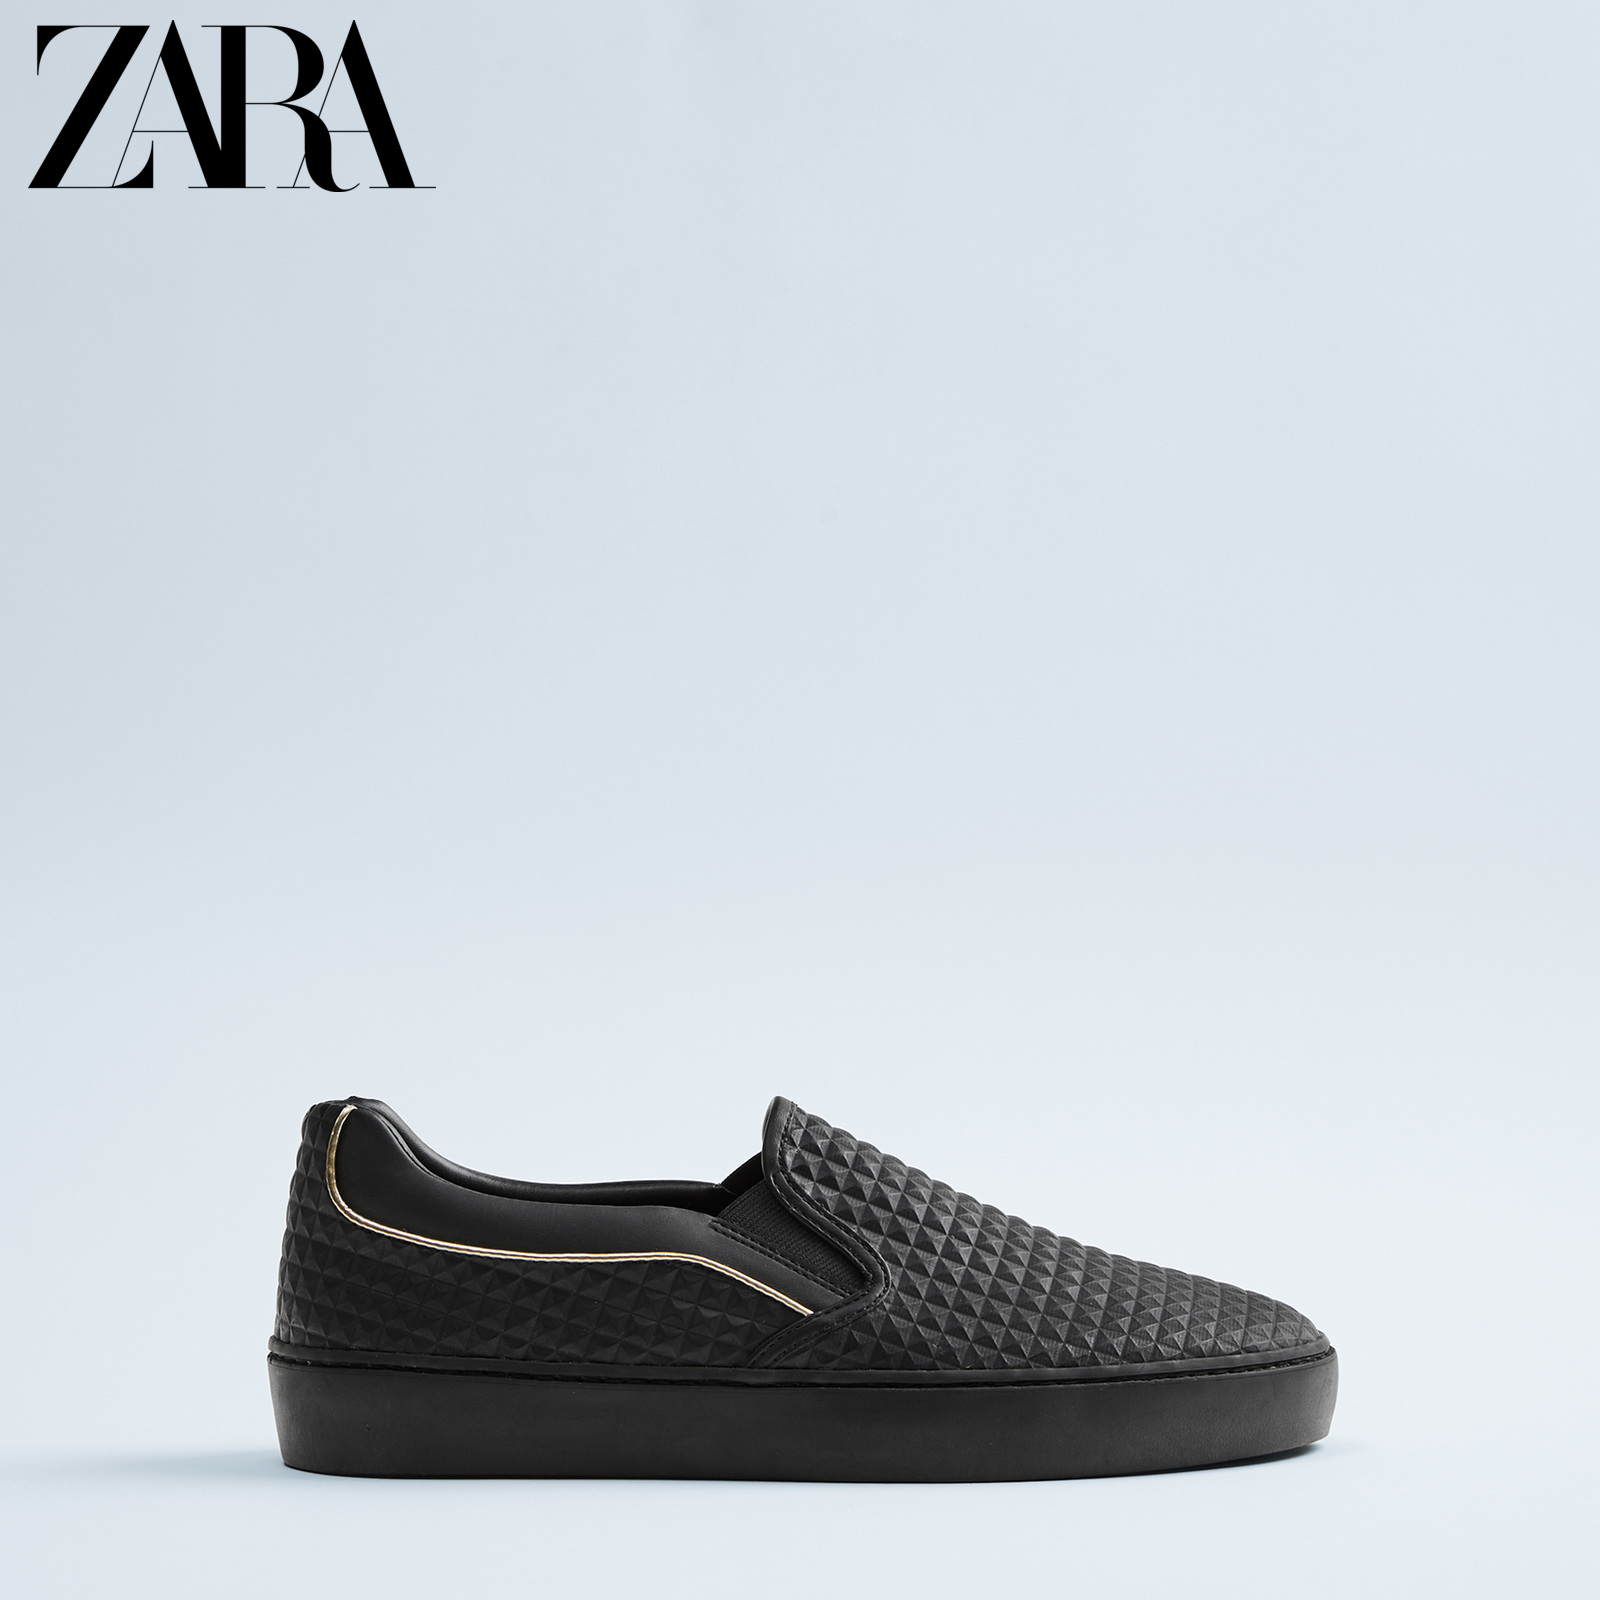 Zara new men's Shoes Black Embossed low top trend shoes 12208520040